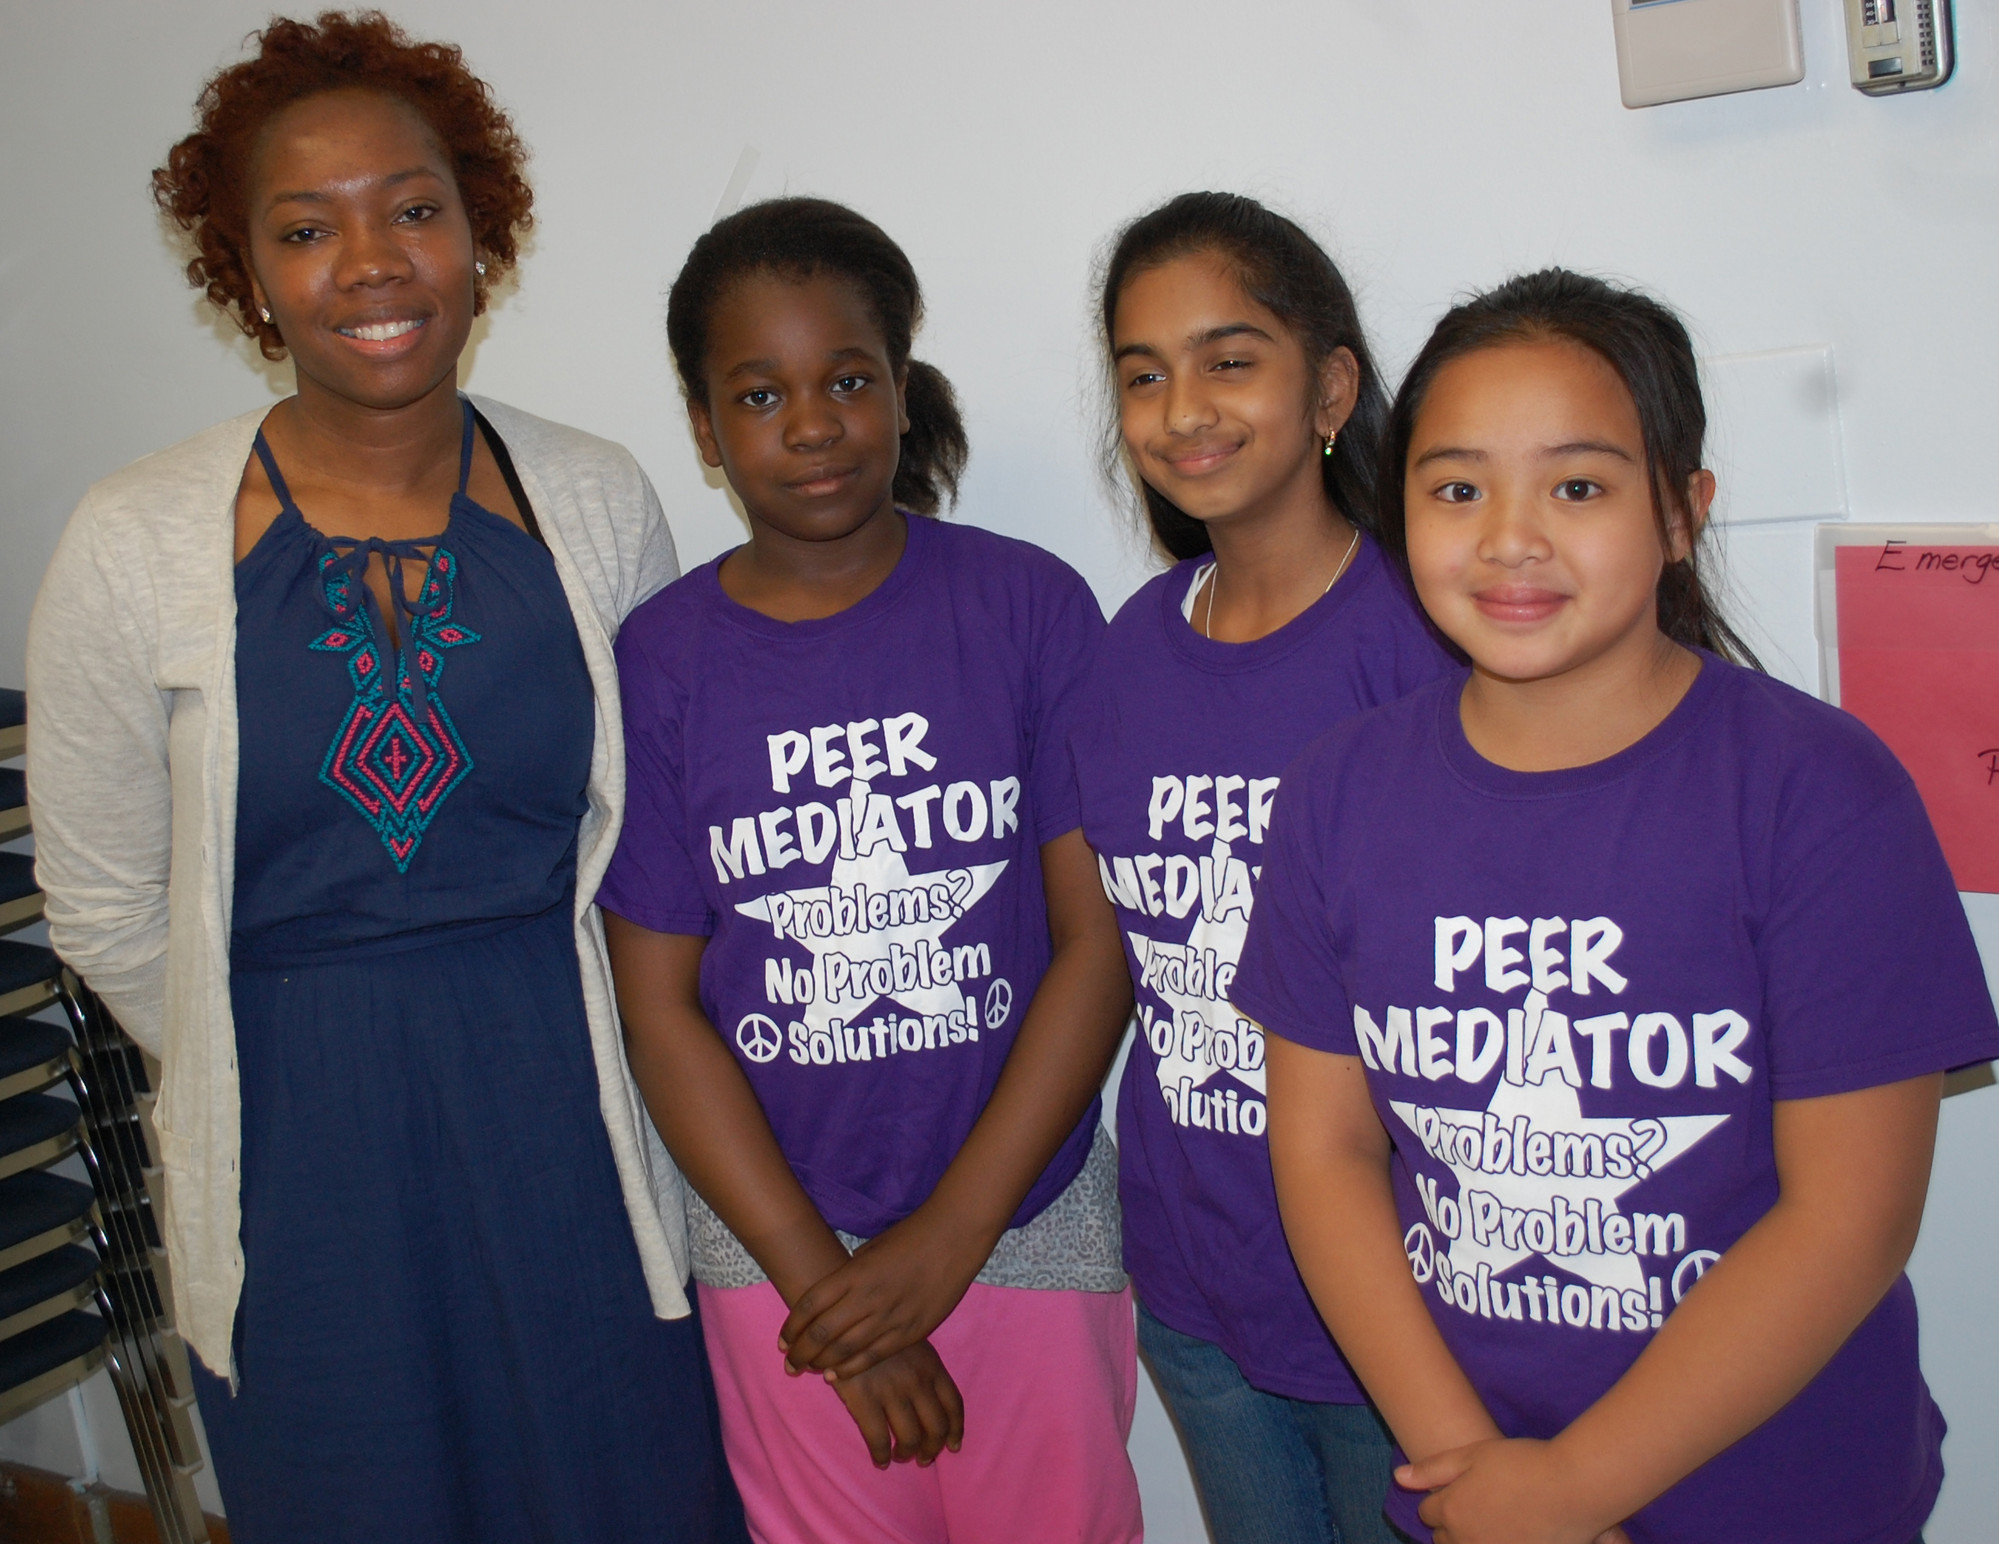 Forest Road School psychologist Sonya Jackson is joined by peer mediators Tia Walker, Ameena Qadri and Sophie Longid.